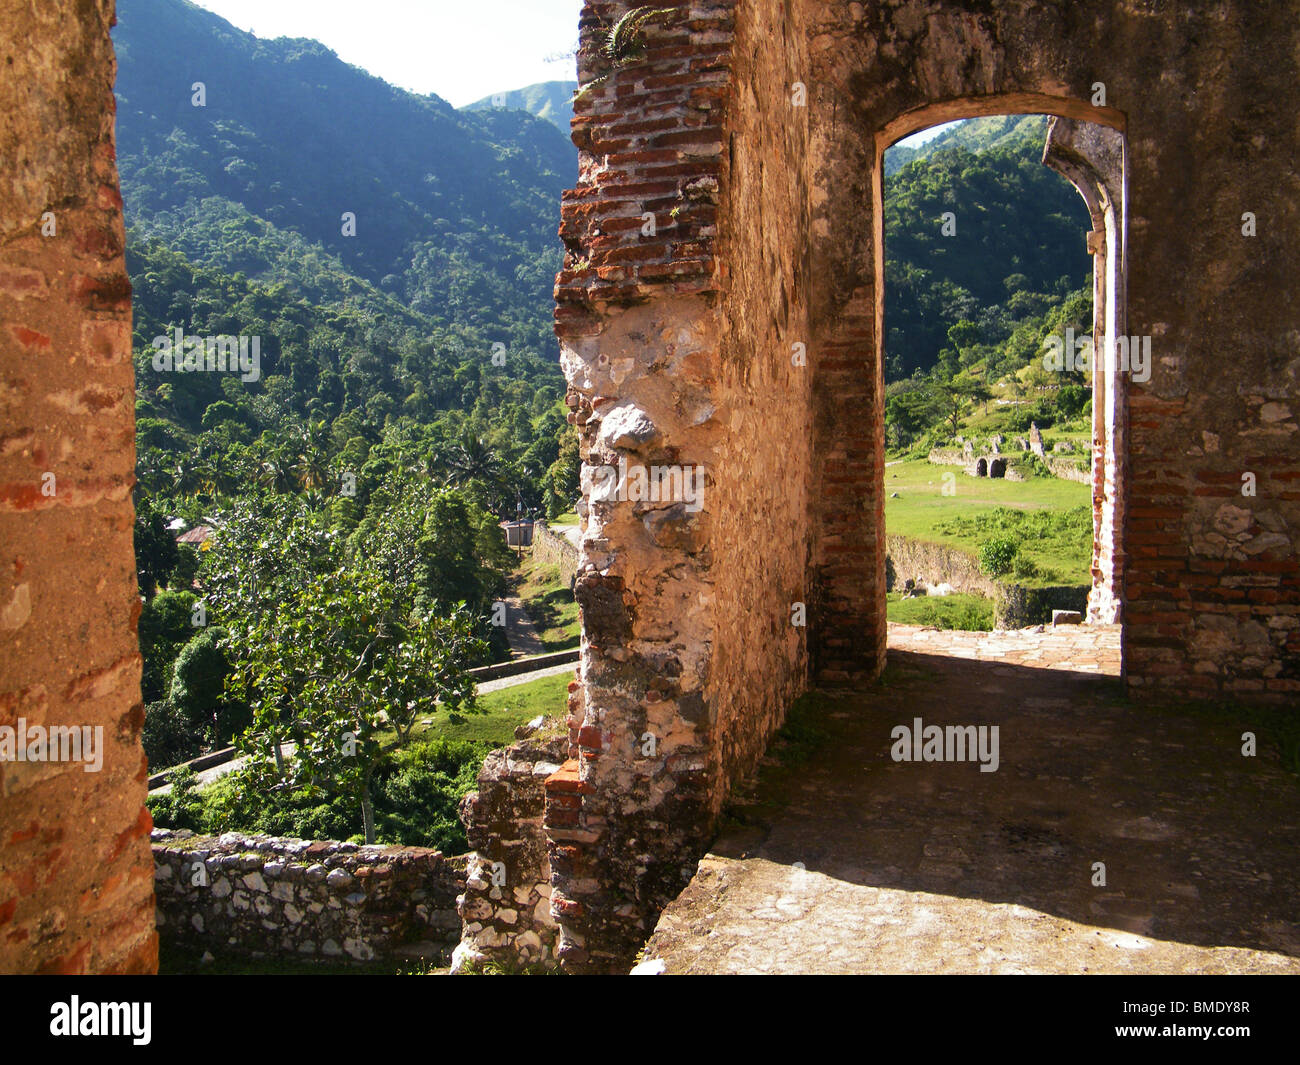 View from the ruins of the Sans Souci palace near Cap Haitien, Haiti - Stock Image